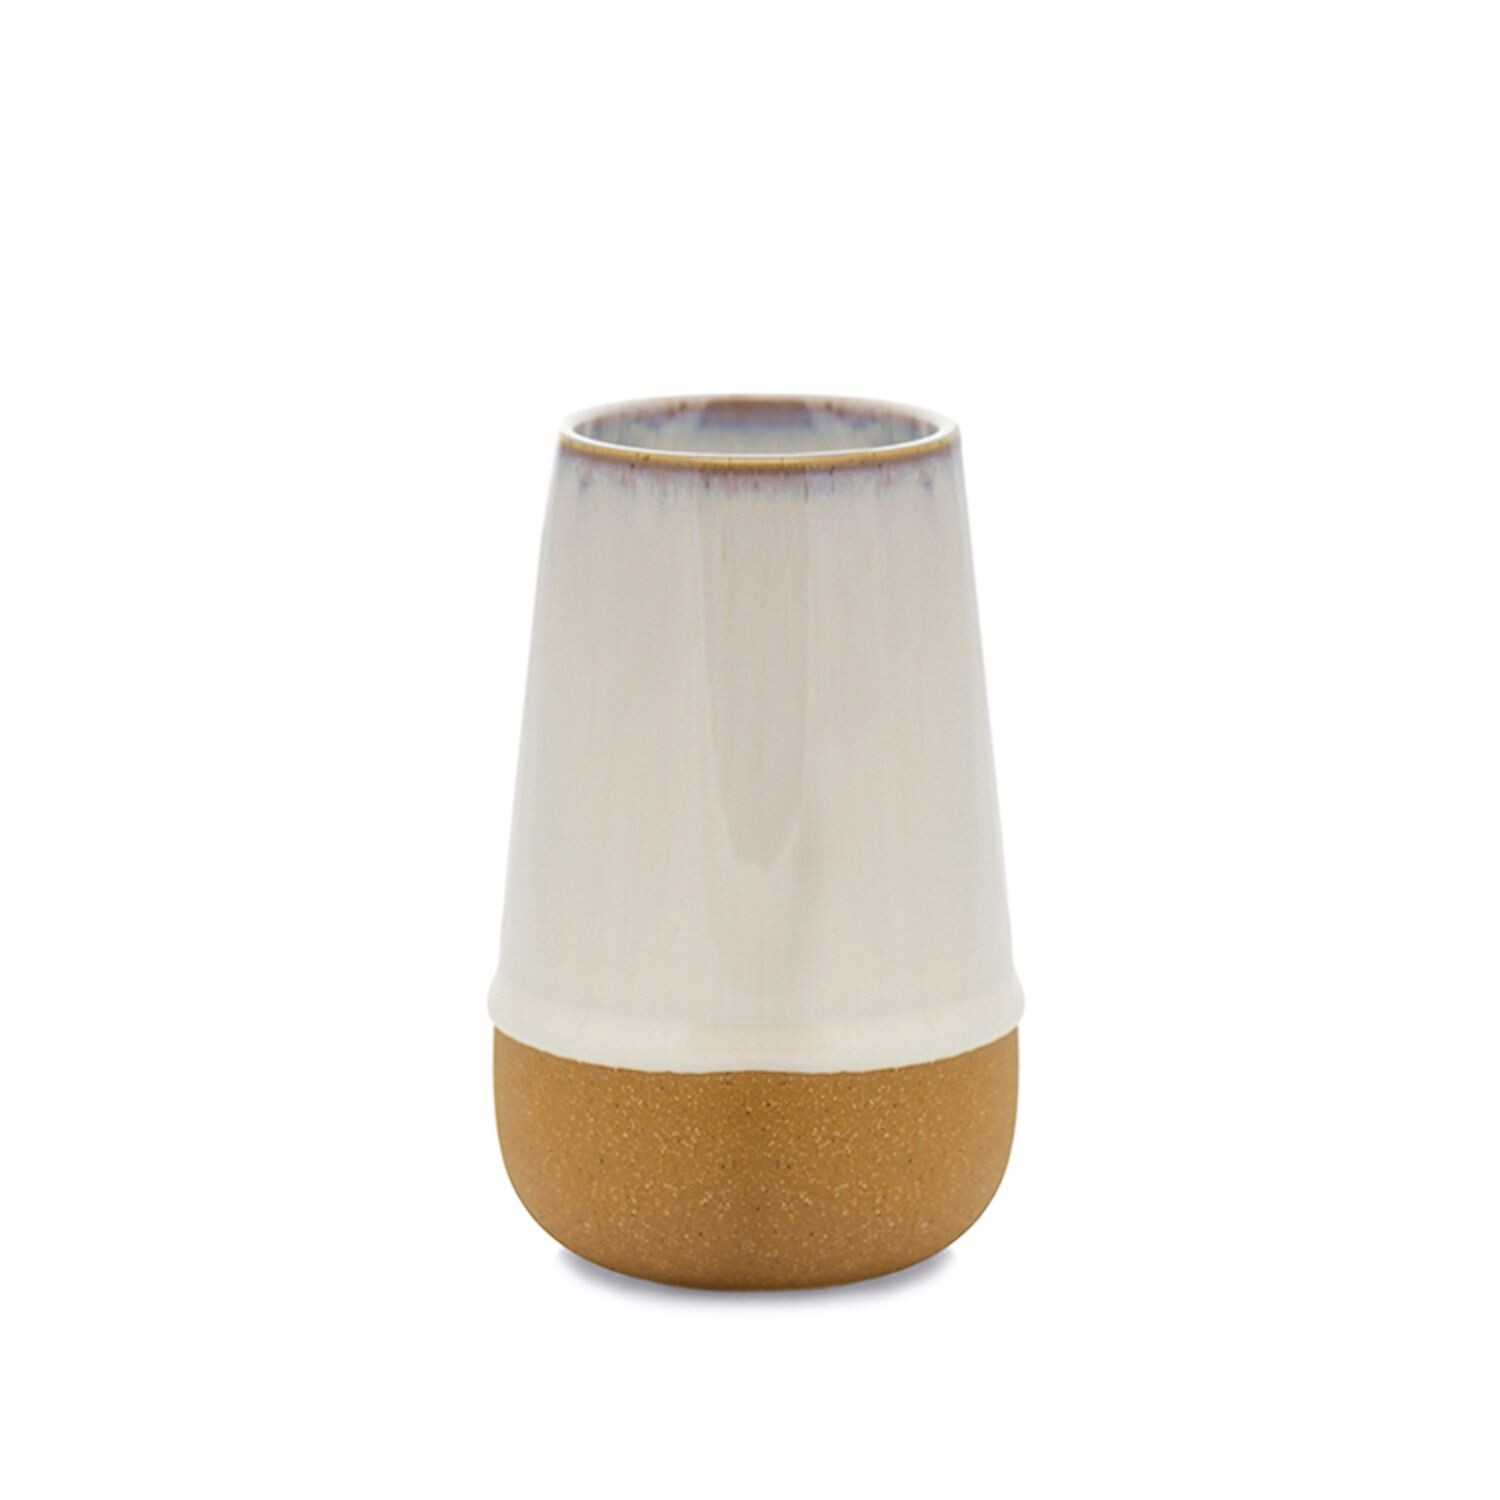 KIN White Ceramic Soy Wax Candle - Jasmin and Bamboo